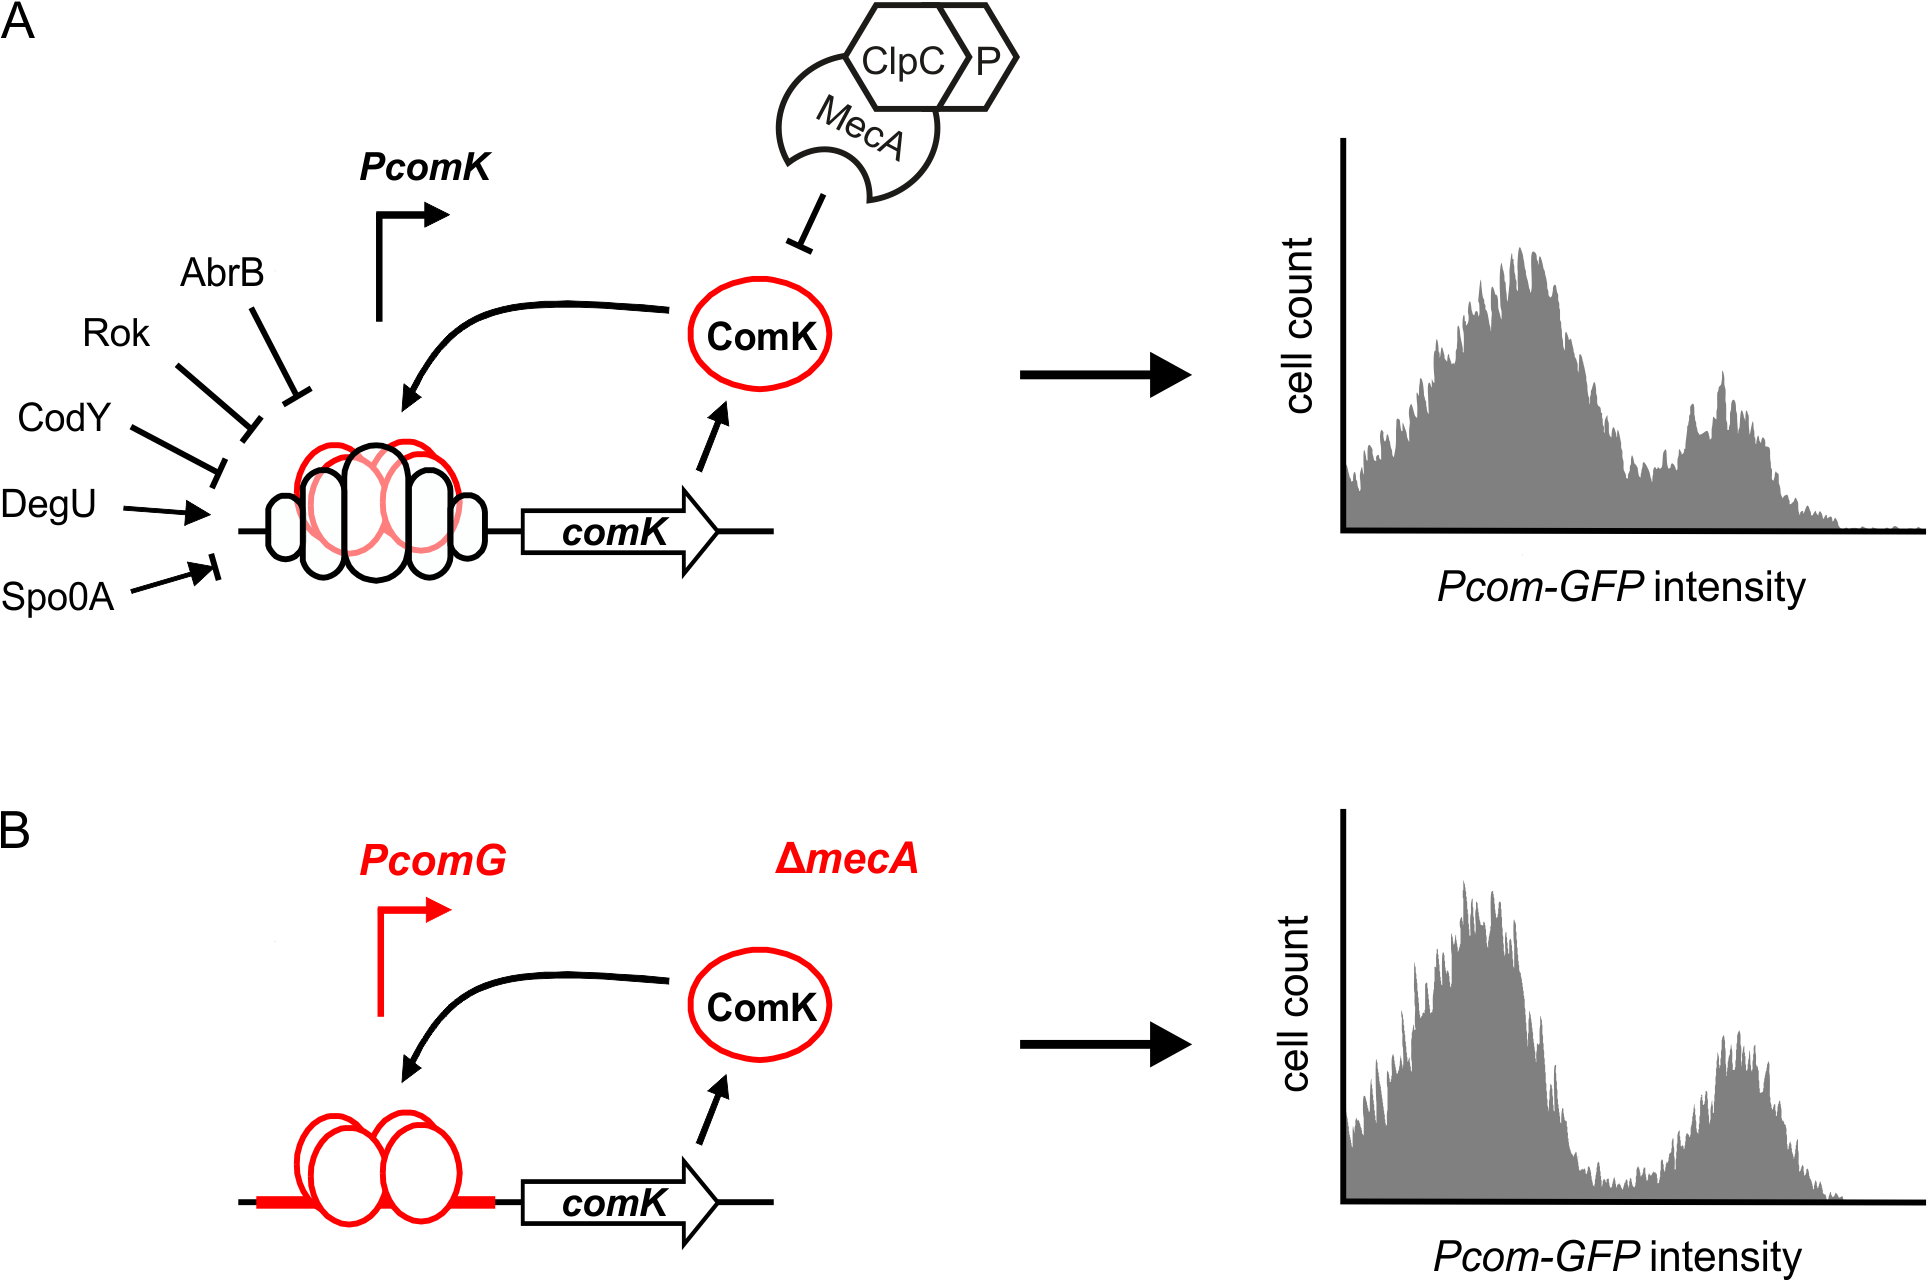 Autostimulation of ComK expression is sufficient for bimodal distribution.